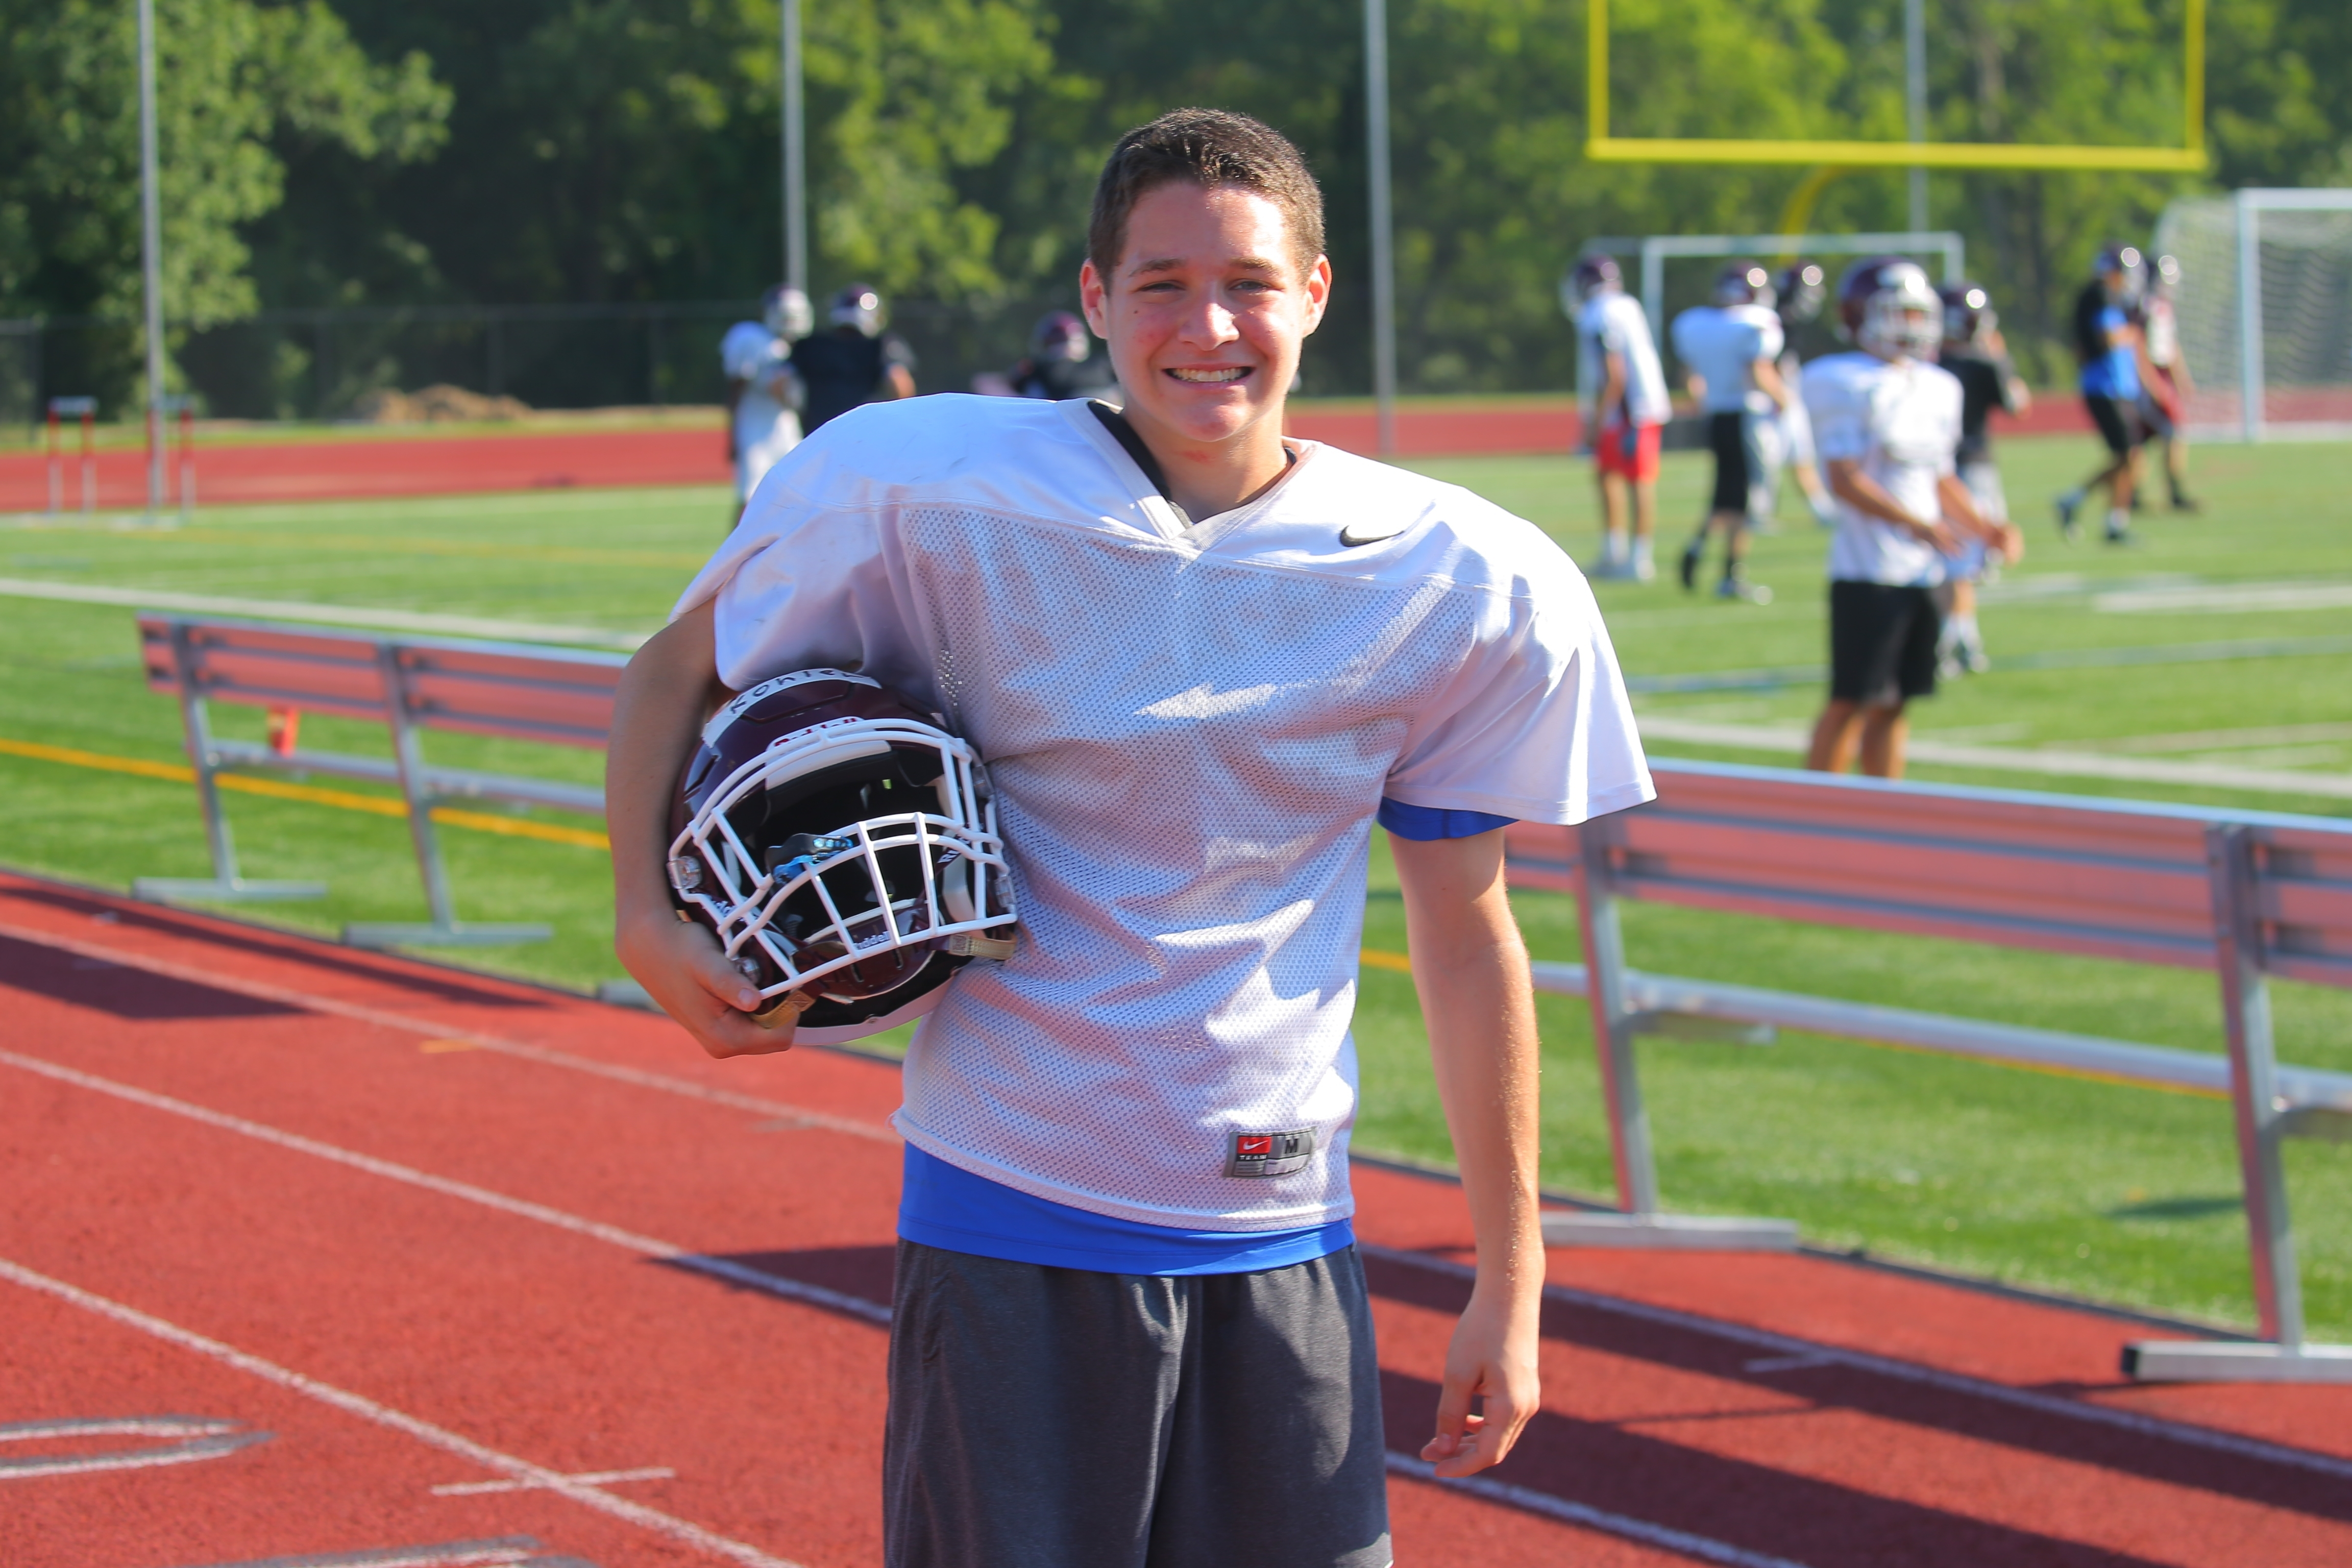 5th year Orchard Park senior with autism can't play football, Section VI says